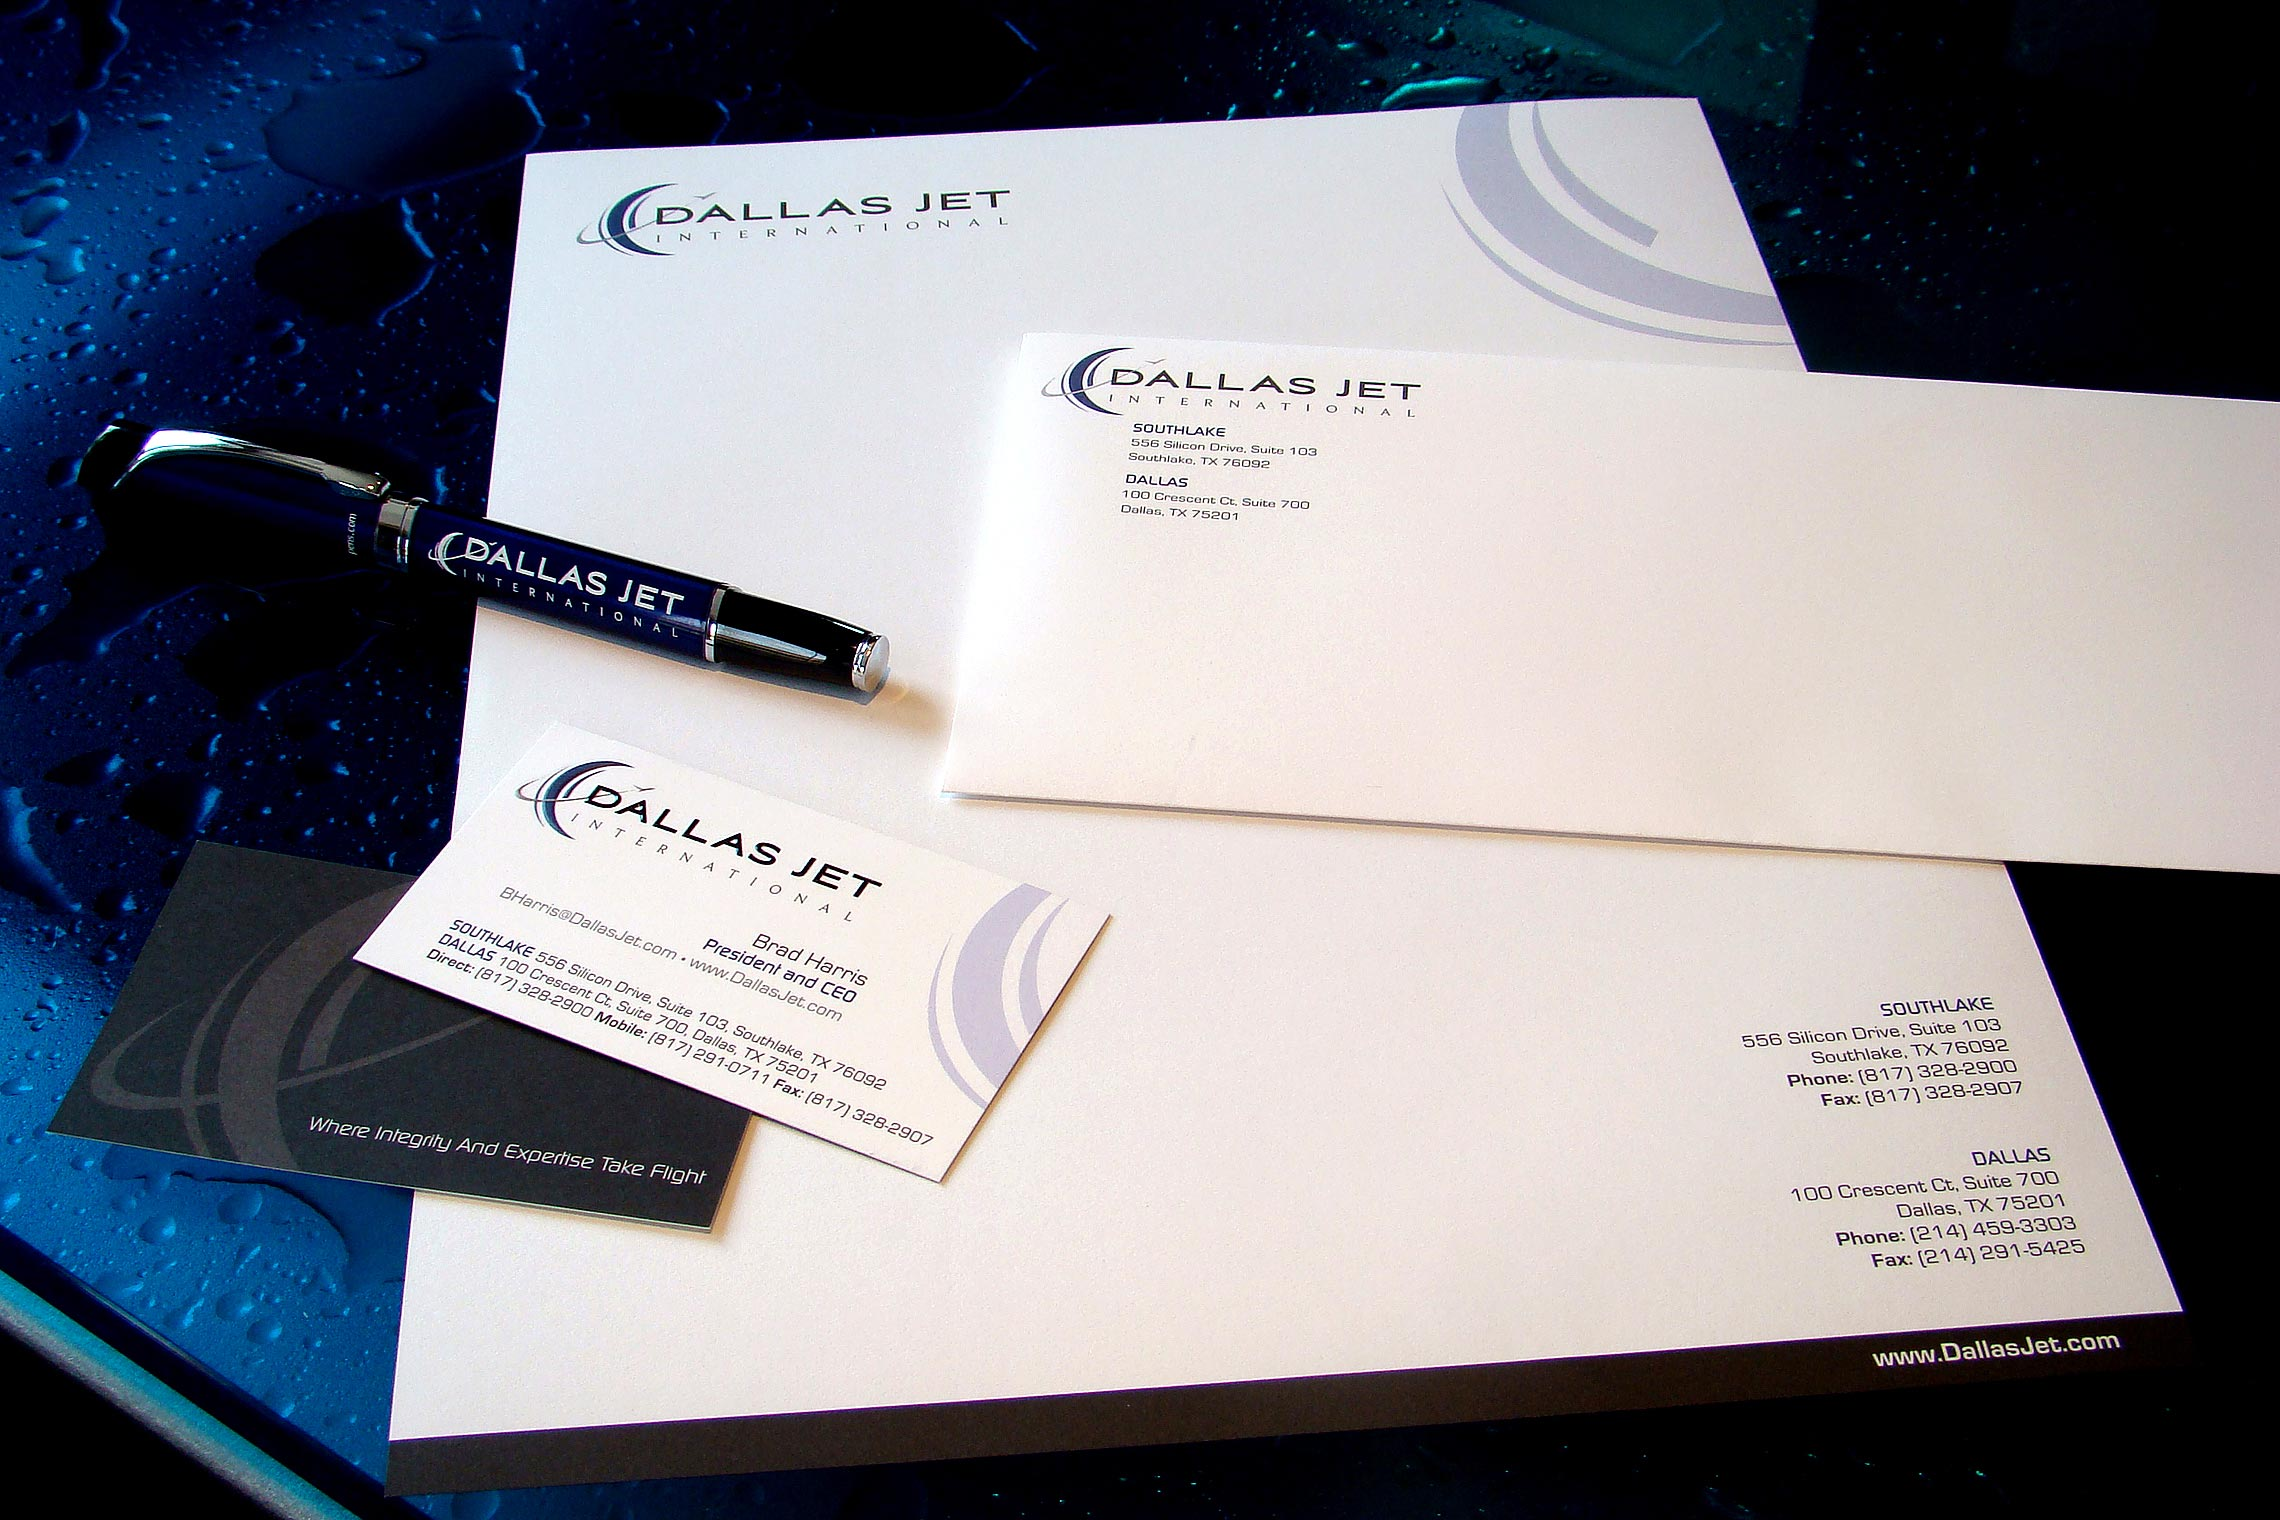 Dallas Jet International Business Identity Stationary Set - Pen, Business Card, Letterhead and Envelope